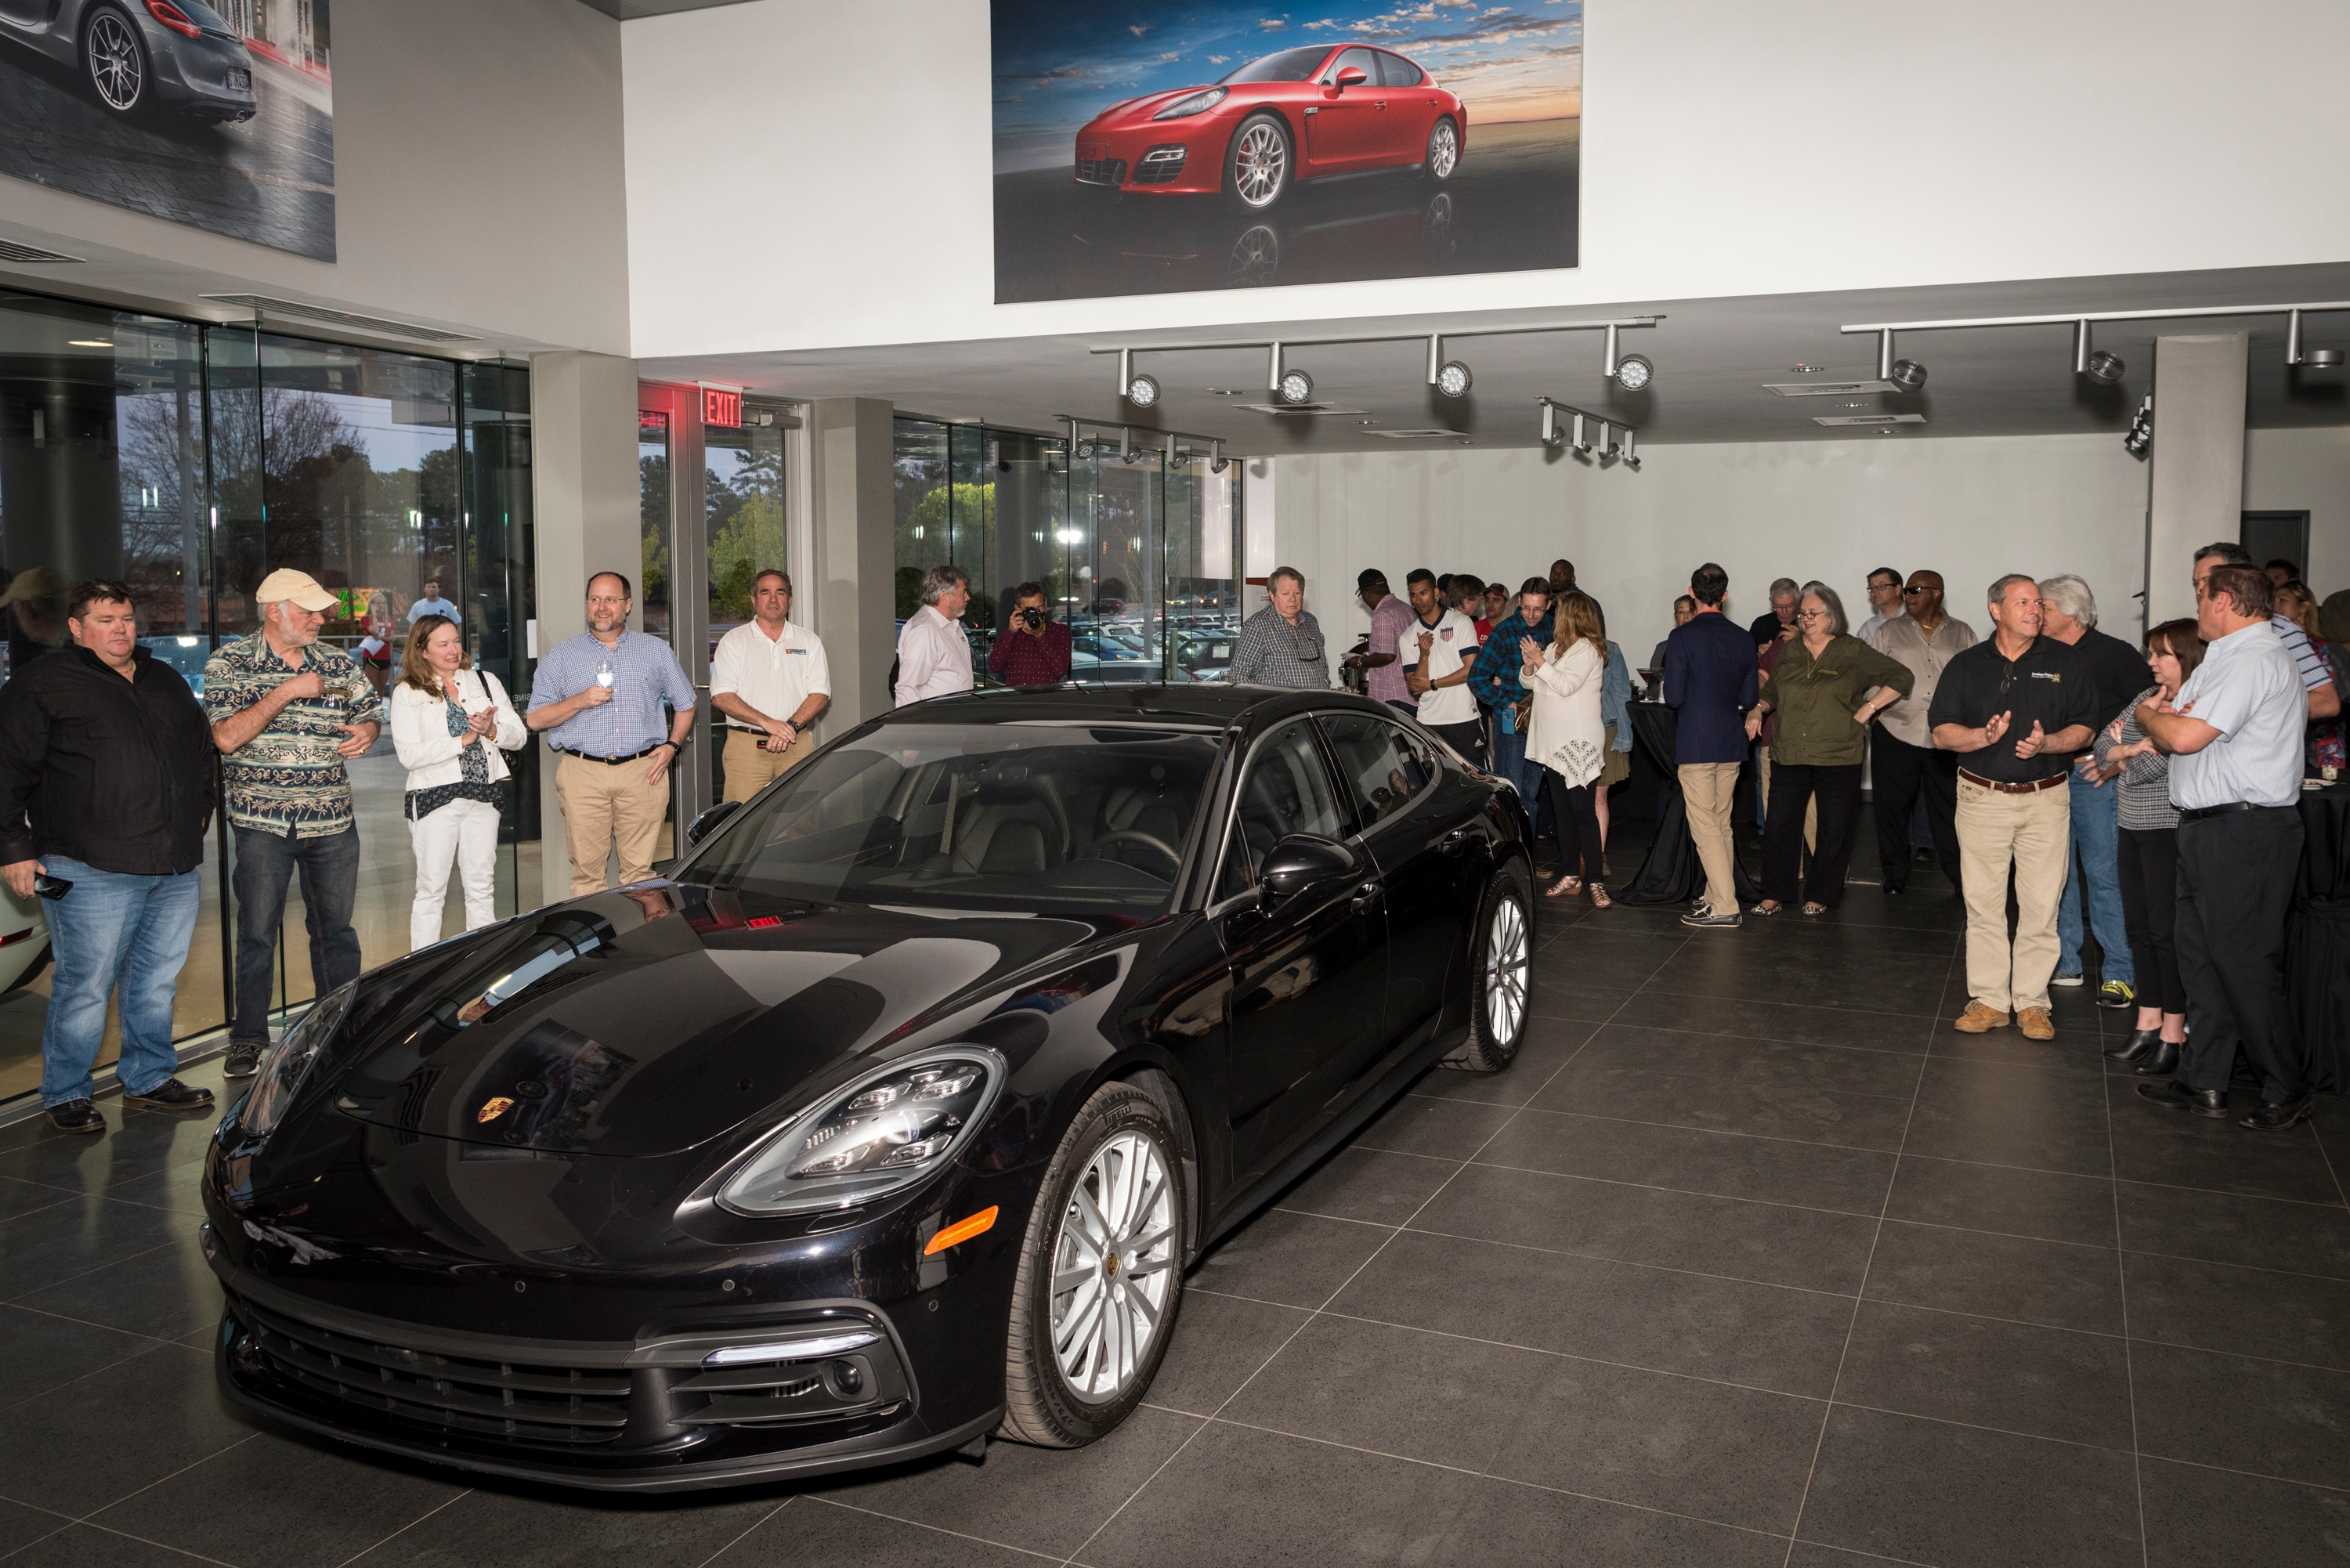 Recently porsche of greenville held a special event where guests could be some of the very first people to see the all new 2018 porsche panamera turbo